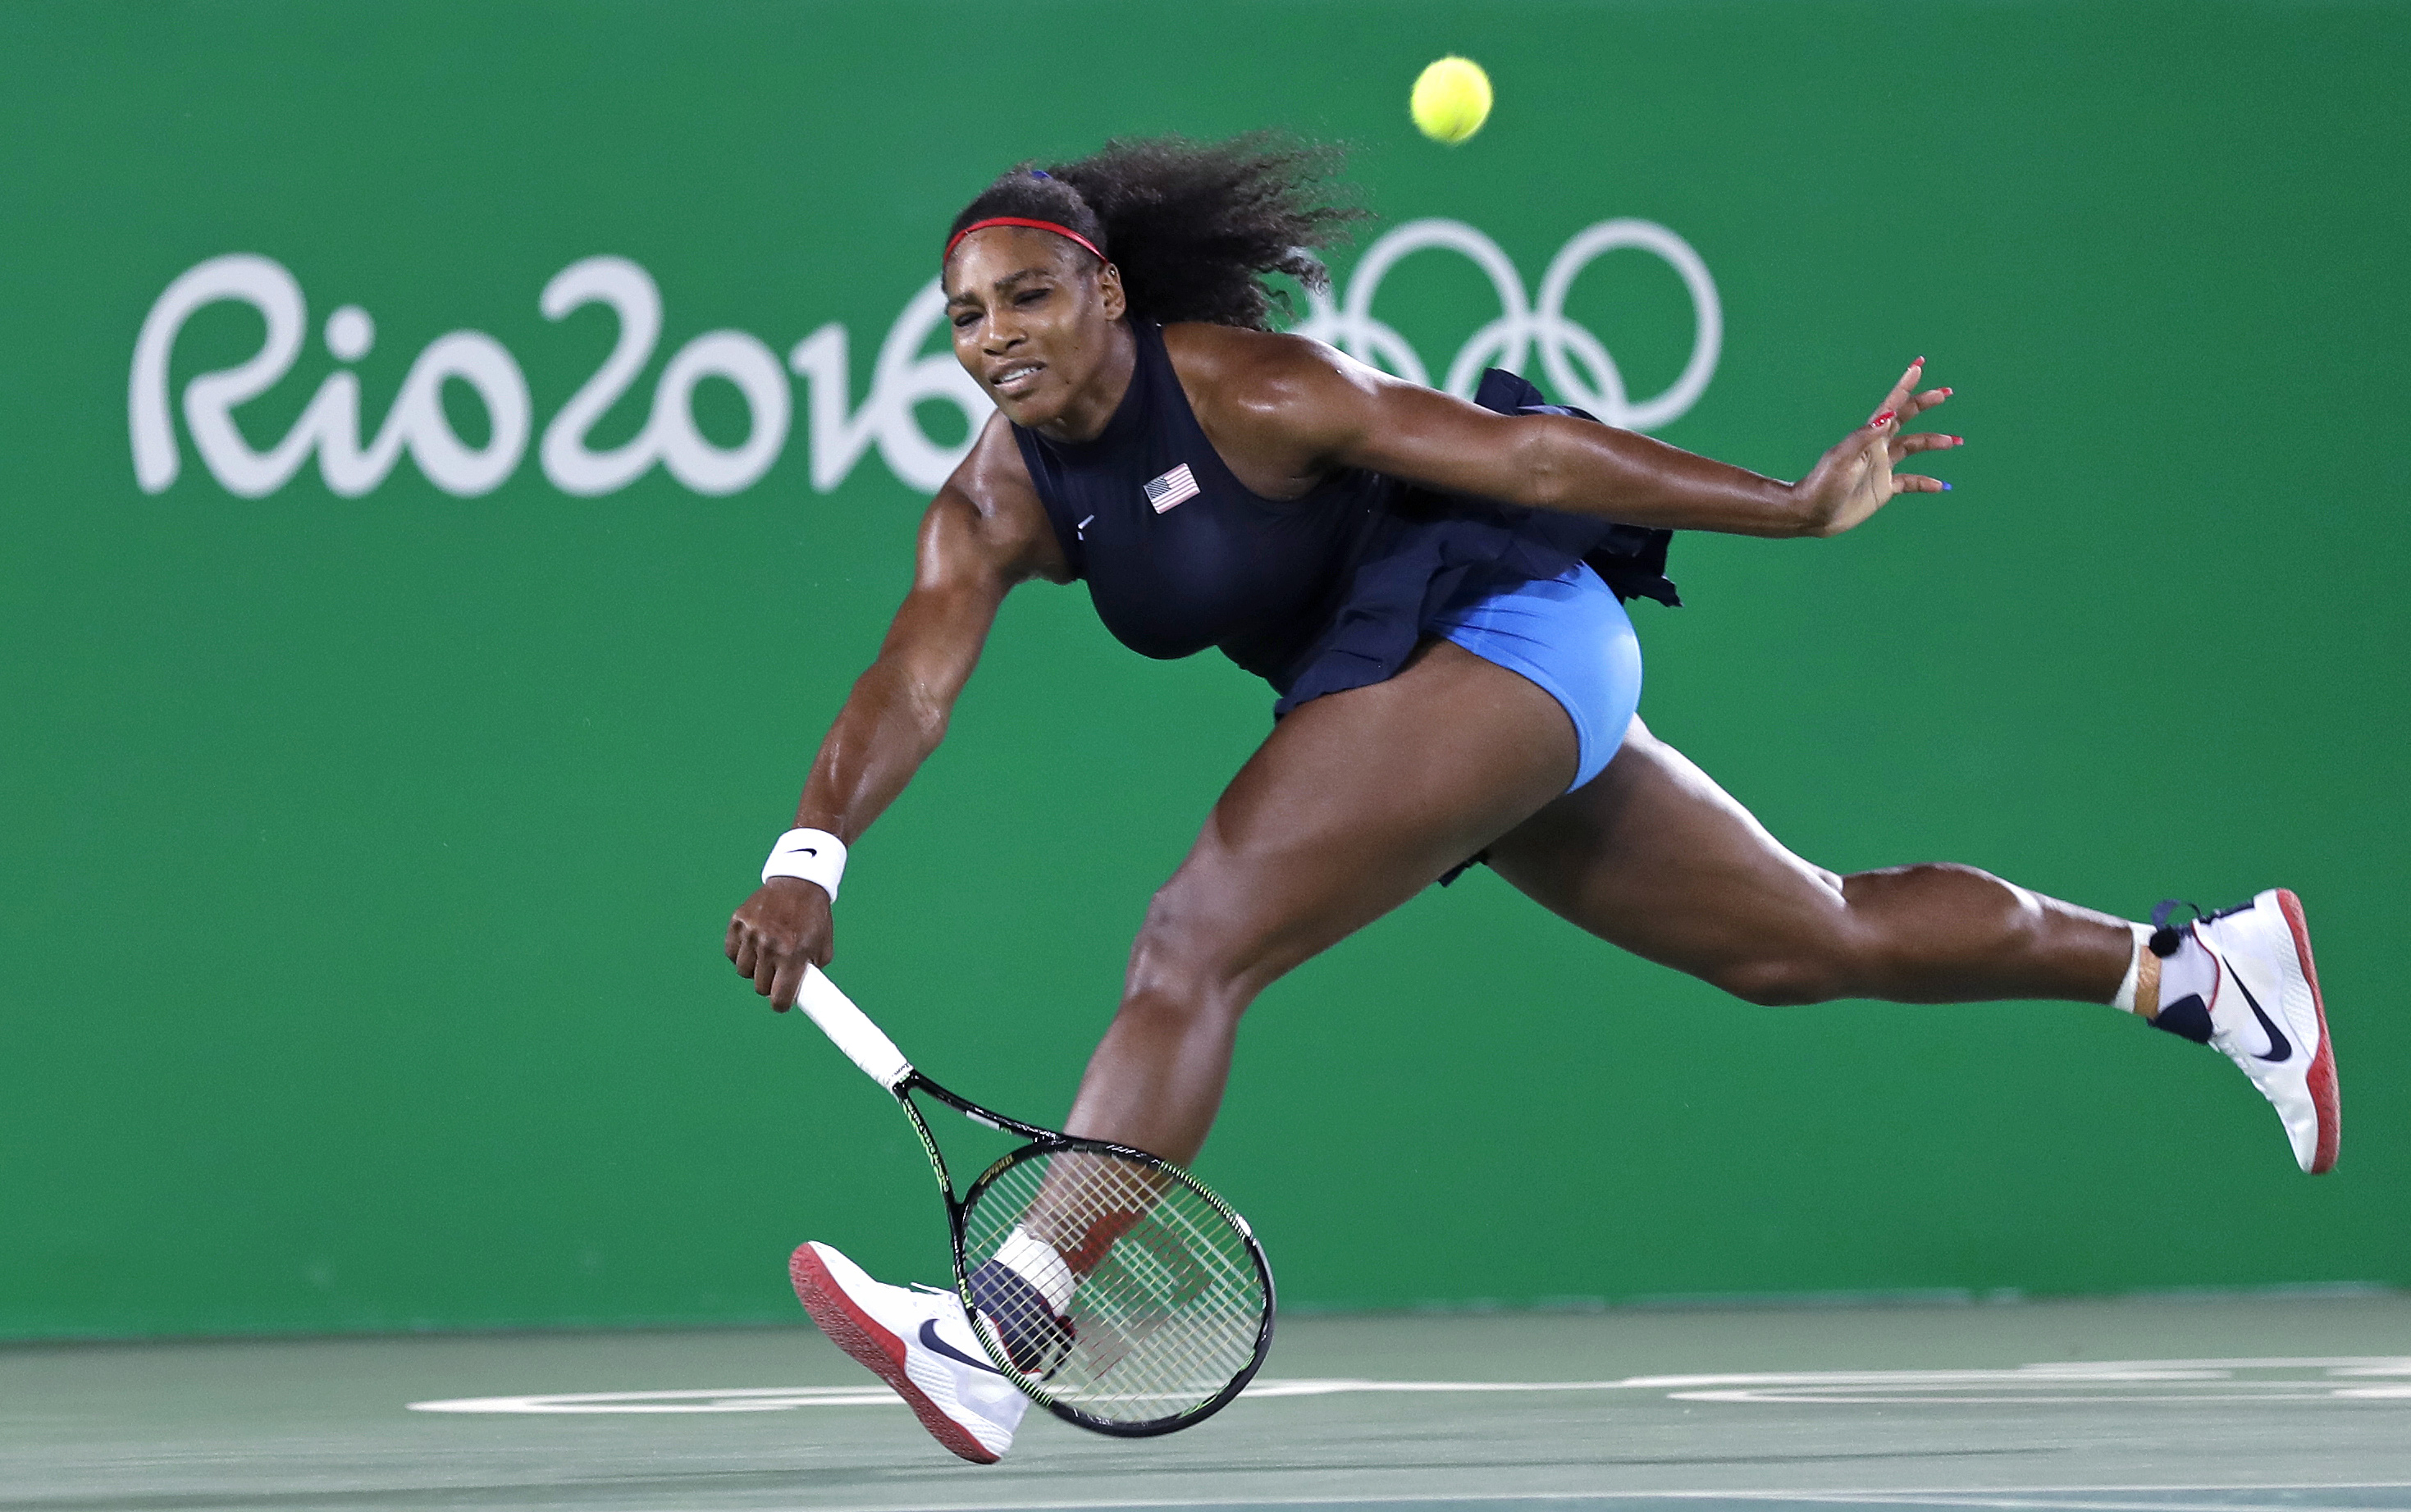 Serena Williams, of the United States, chases down a return during her loss to Elina Svitolina, of Ukraine, at the 2016 Summer Olympics in Rio de Janeiro, Brazil, Tuesday, Aug. 9, 2016. (AP Photo/Charles Krupa)